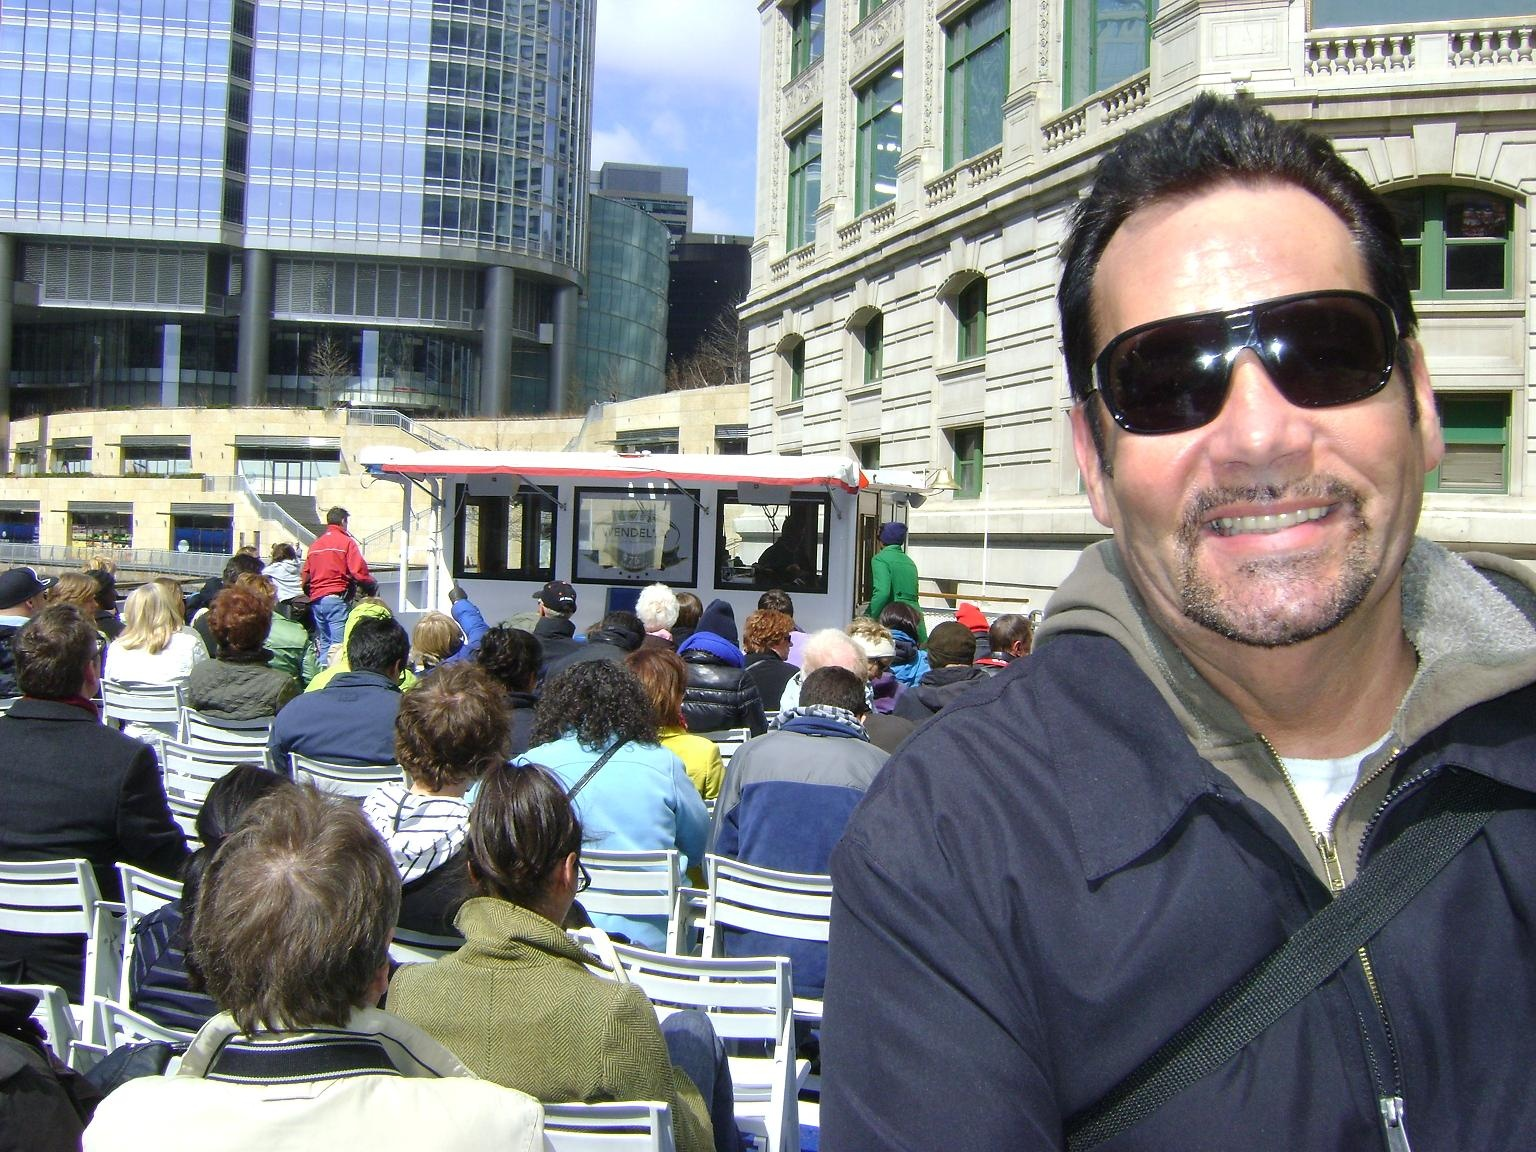 https://0901.nccdn.net/4_2/000/000/064/d40/Bruce-Bell-on-the-Chicago-River-Cruise-April-2011-1536x1152.jpg